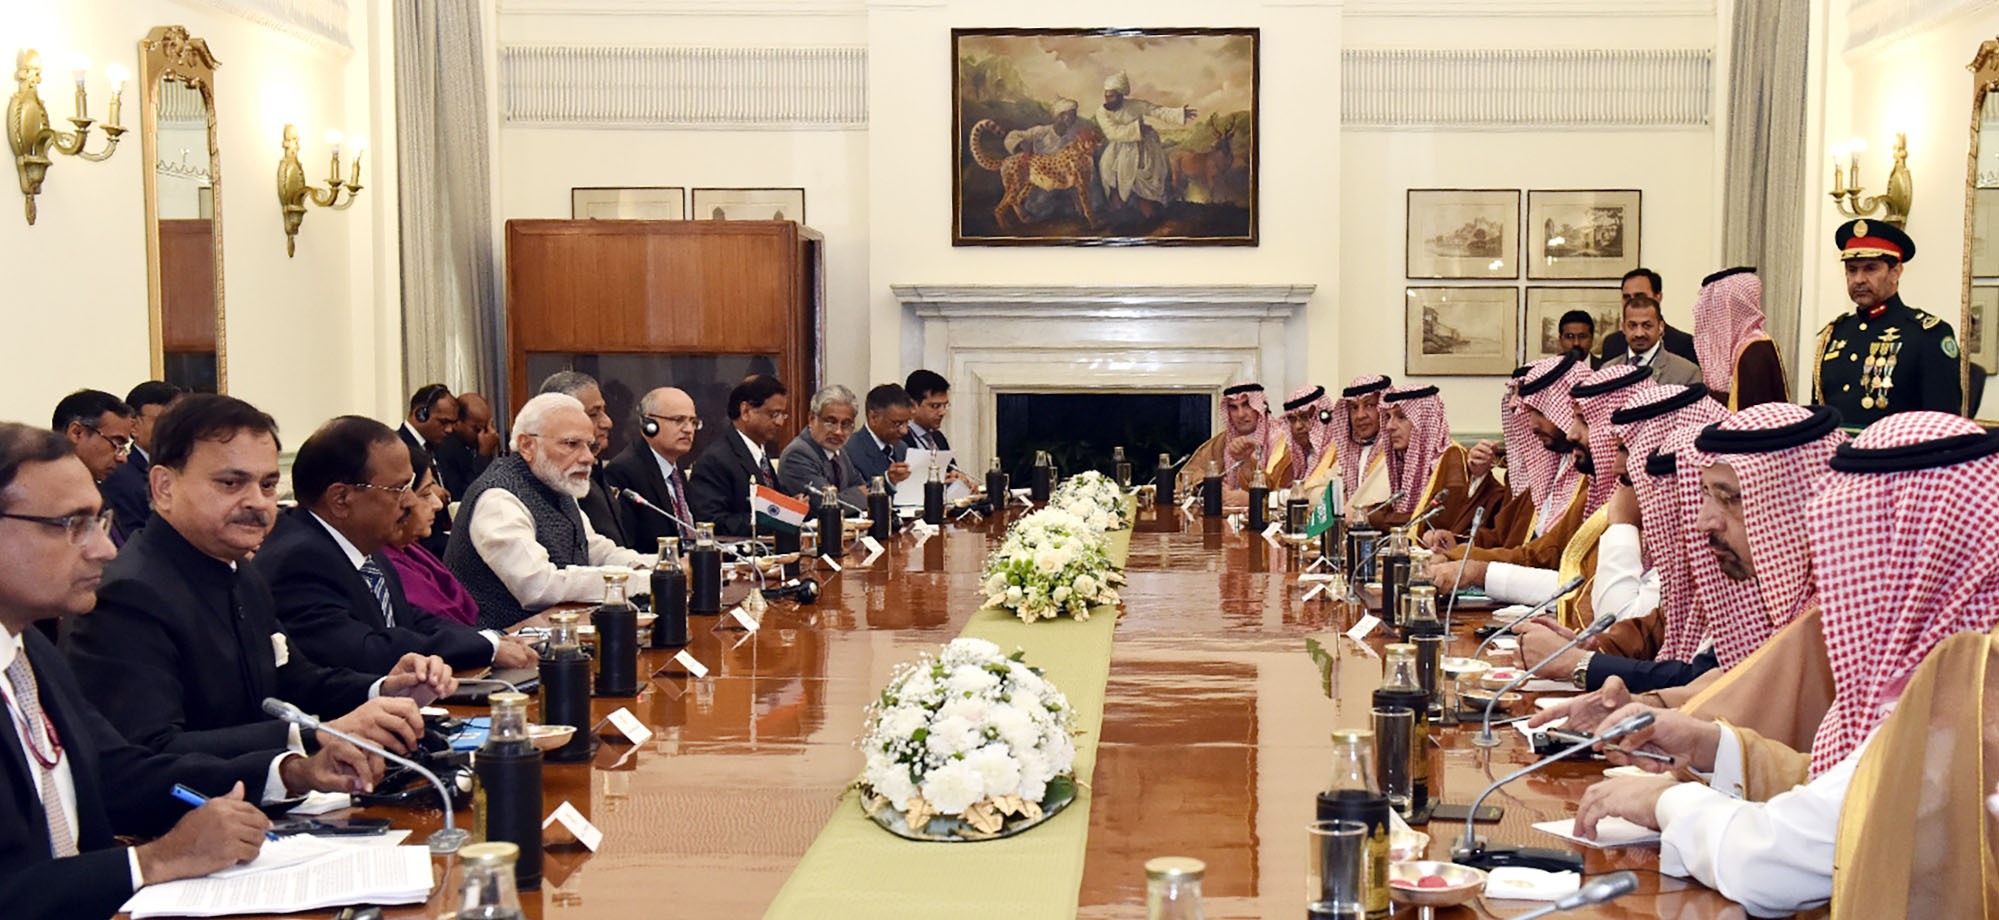 Prime Minister Narendra Modi with the Crown Prince, Vice President of the Council of Ministers of Defence of the Kingdom of Saudi Arabia, Prince Mohammed Bin Salman Bin Abdulaziz Al-Saud,  at the delegation level talks at Hyderabad House, in New Delhi on February 20, 2019. Photo courtesy: PMO